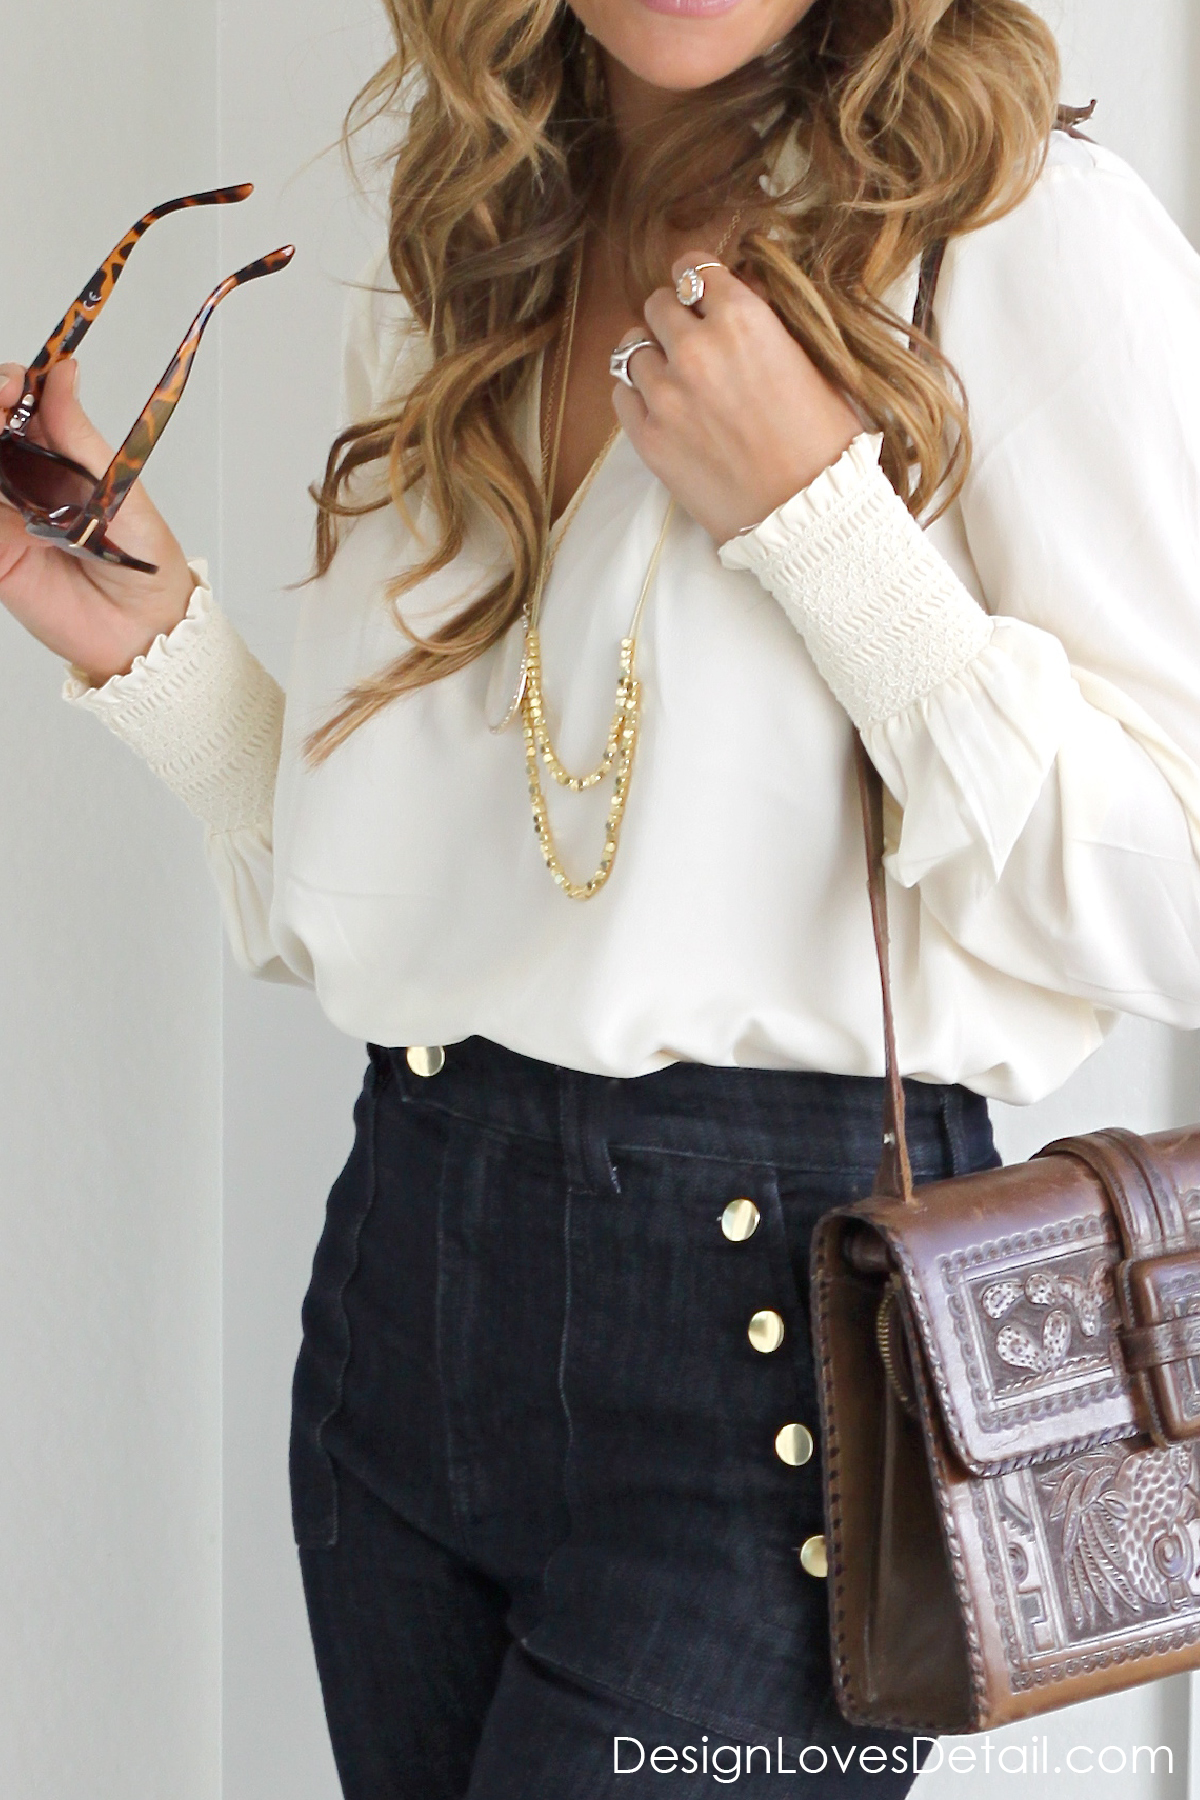 Fashion details. Accessories for this classy boho fashion